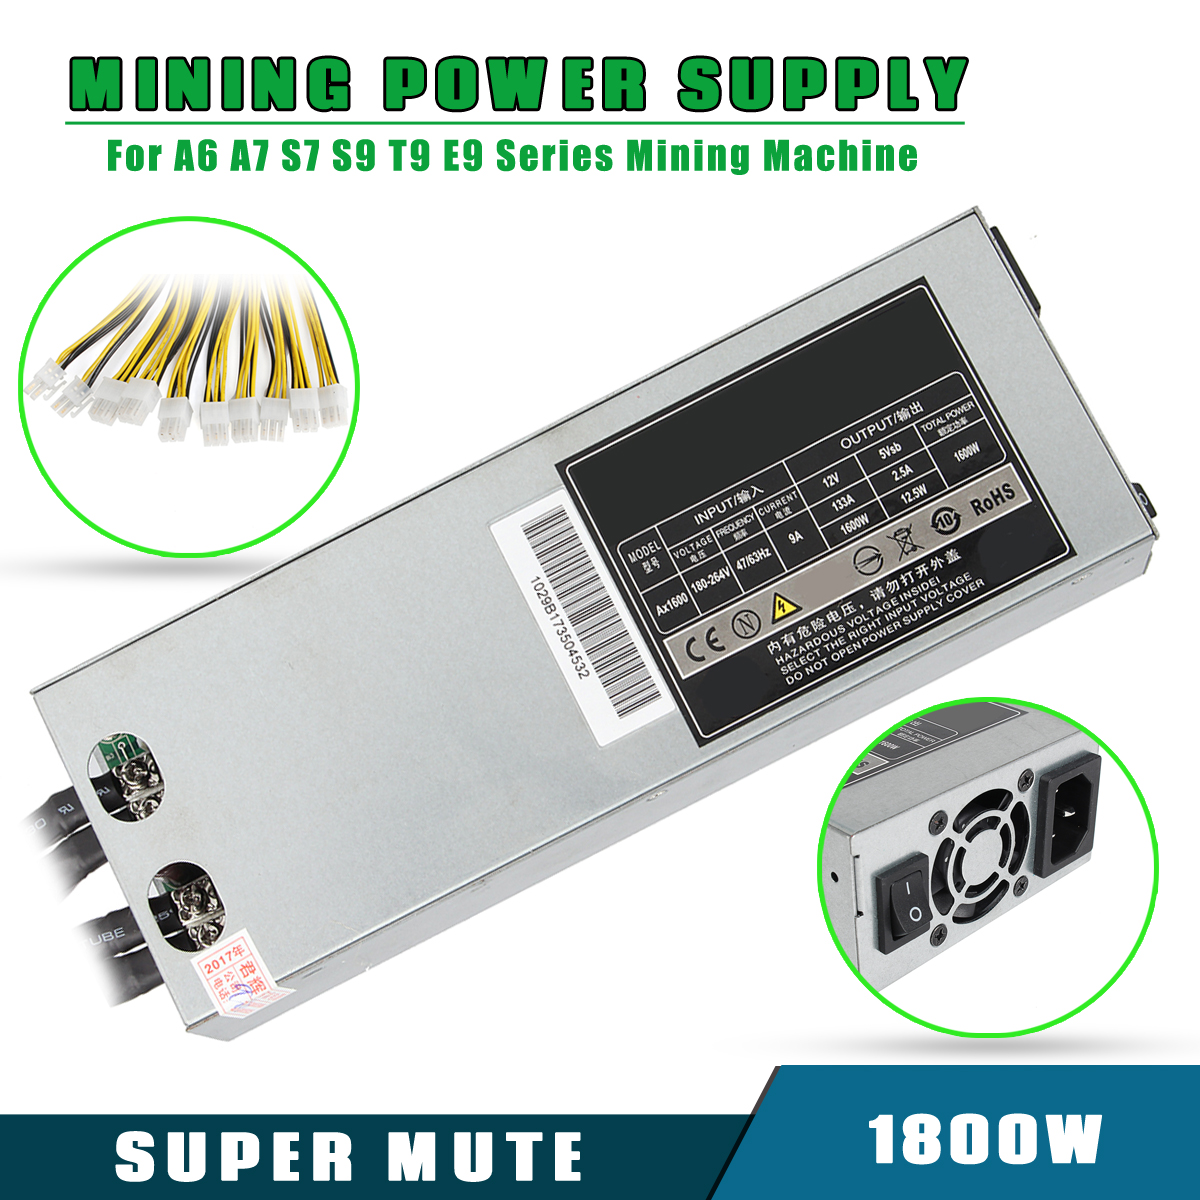 S SKYEE 1800W Power Supply For A6 A7 S7 S9 T9 E9 Series Mining Machine Computer Mining Power Supply With Cable For Miner Mining tyumen battery 6 ст 95ач об